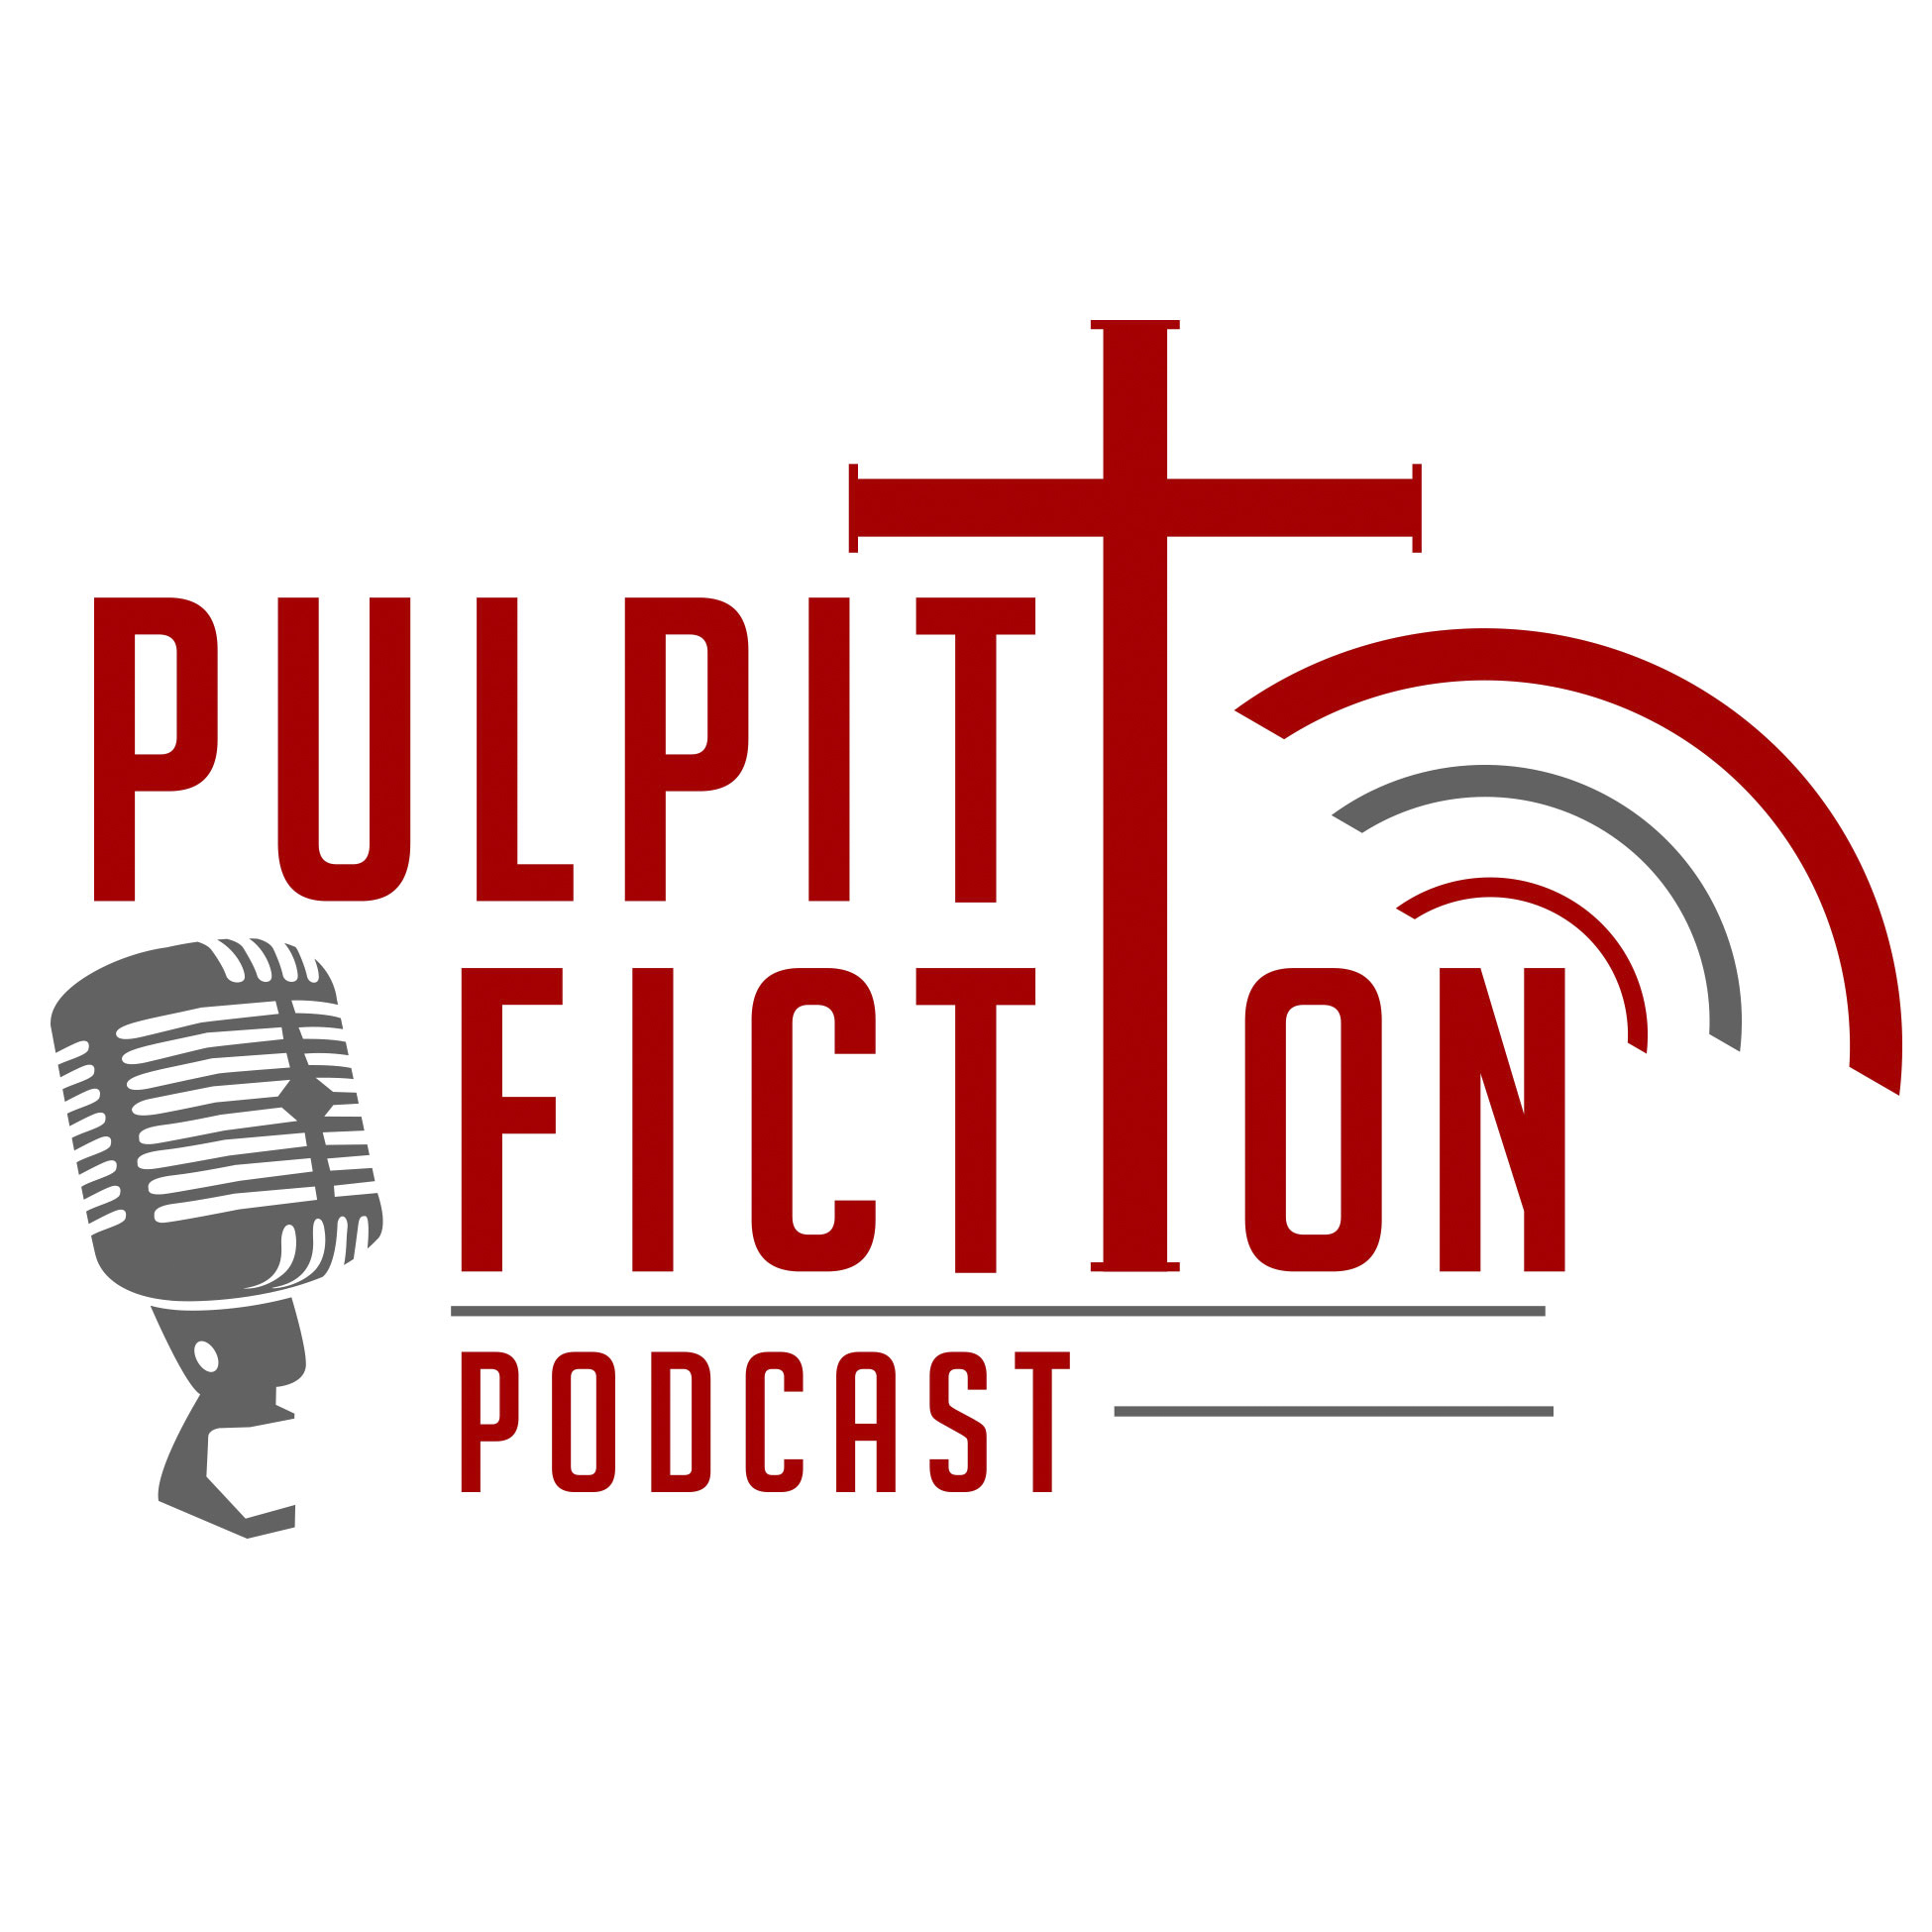 Pulpit Fiction